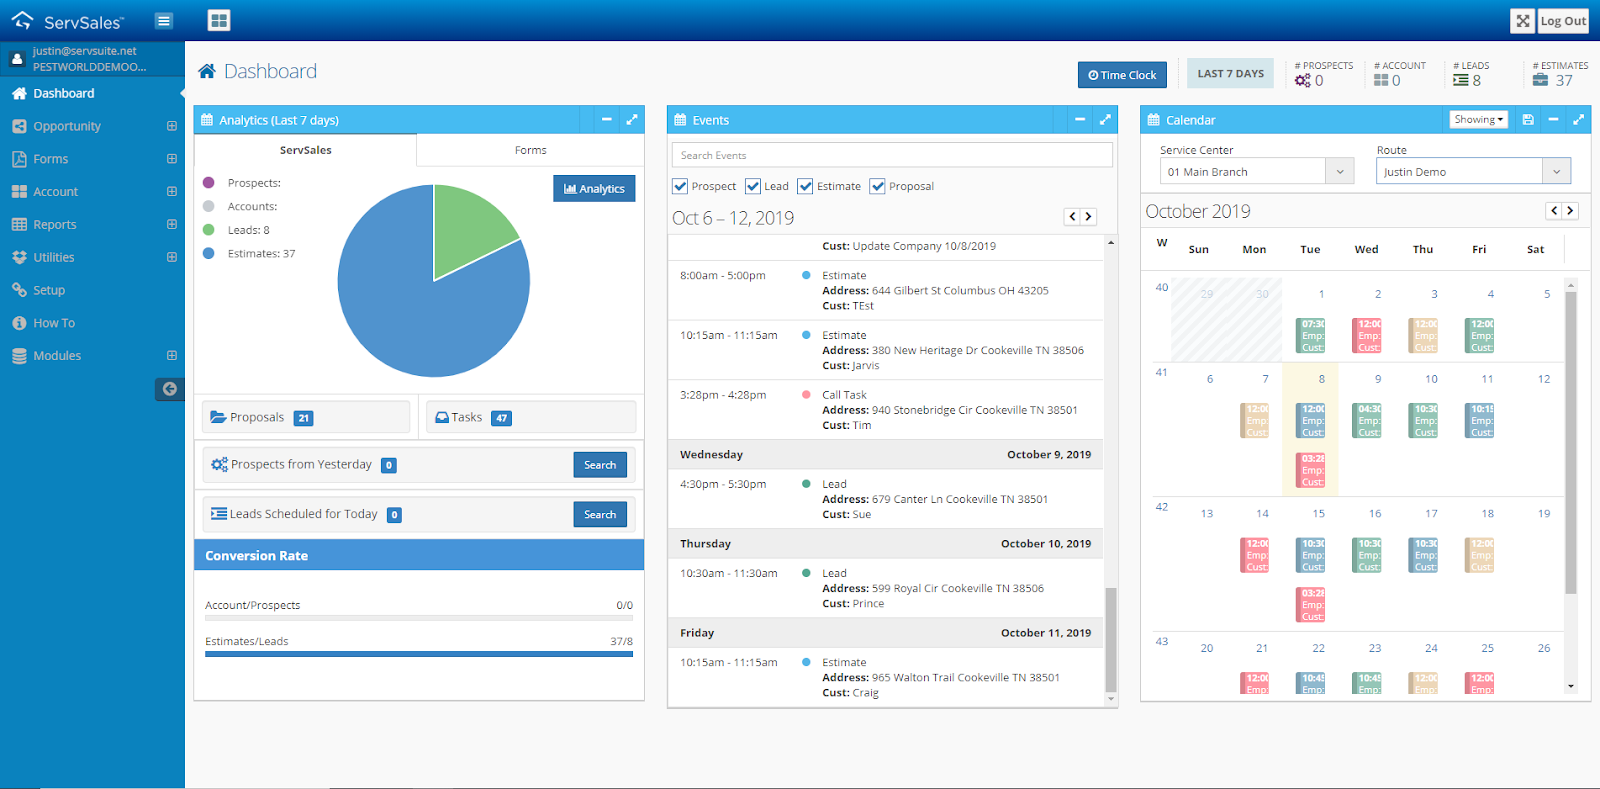 servsales sales management software